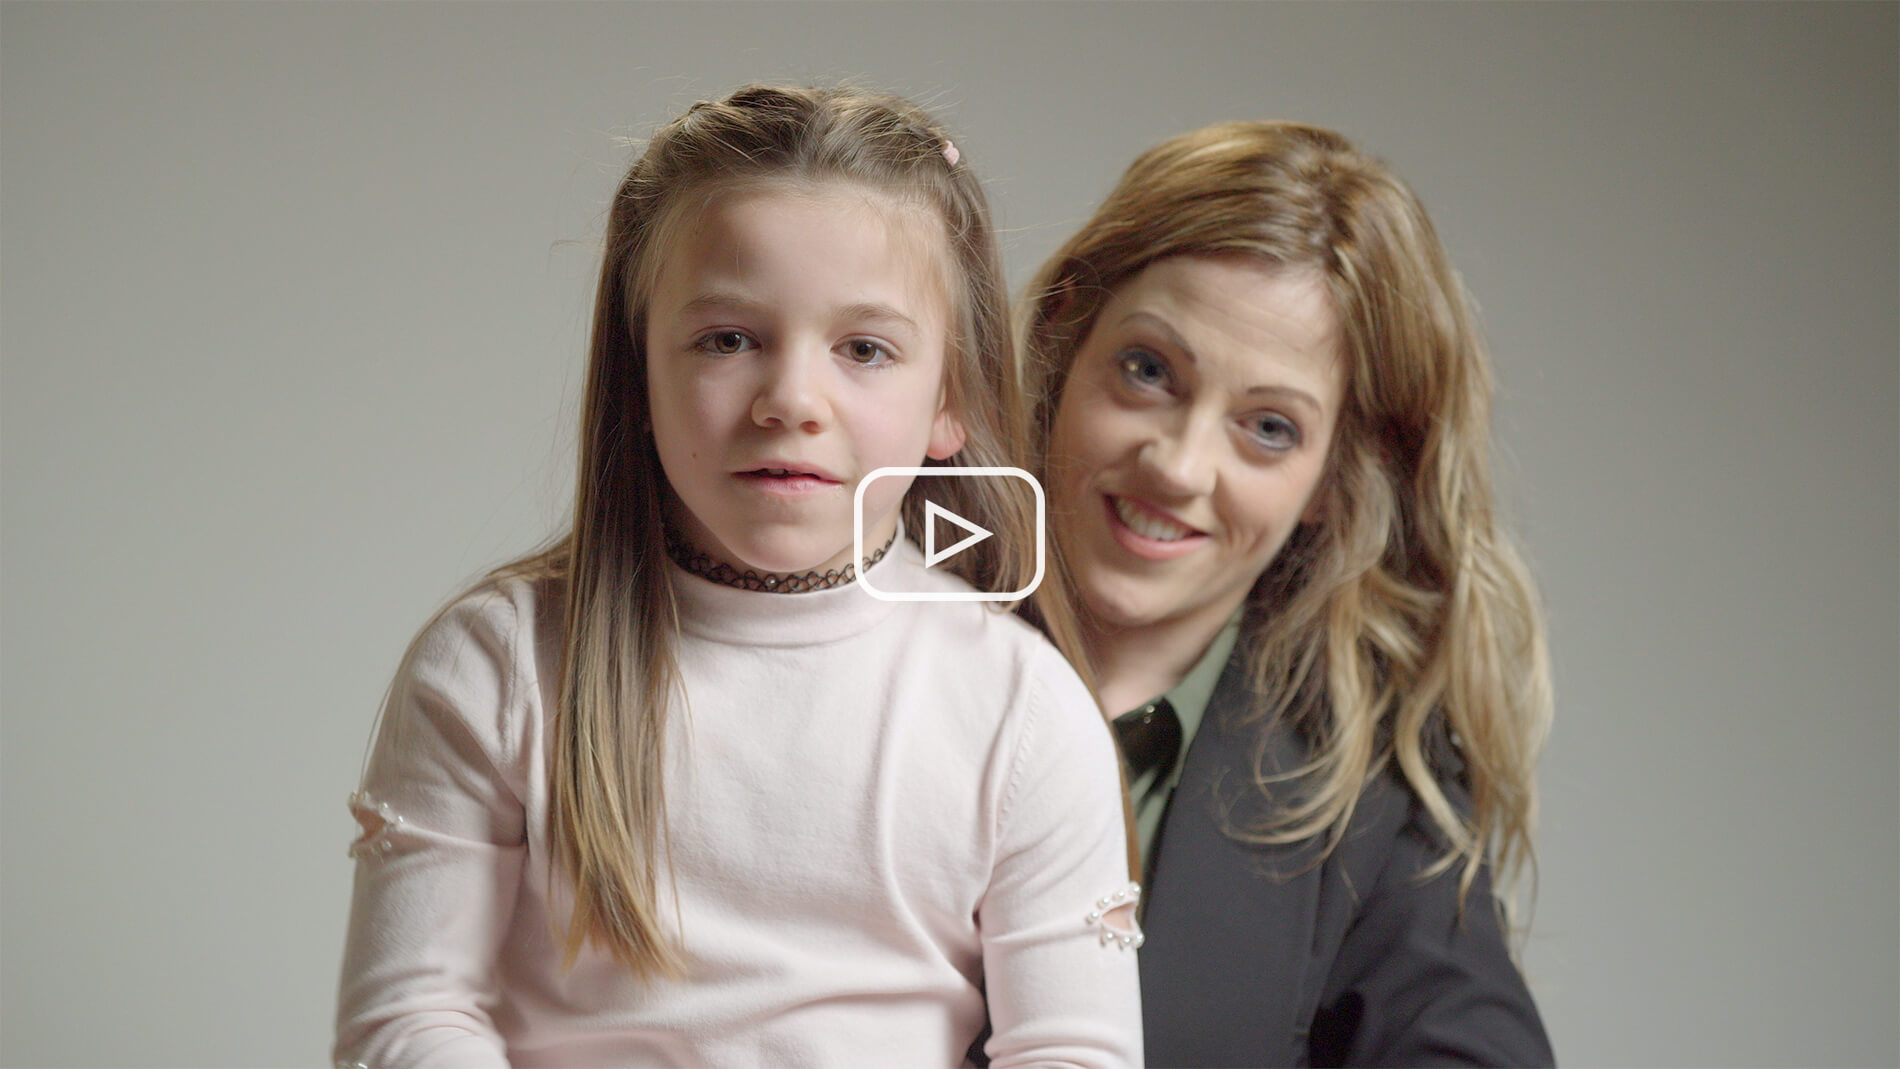 Still image from Turner Syndrome awareness video of Turner Syndrome girl sat on chair looking at camera